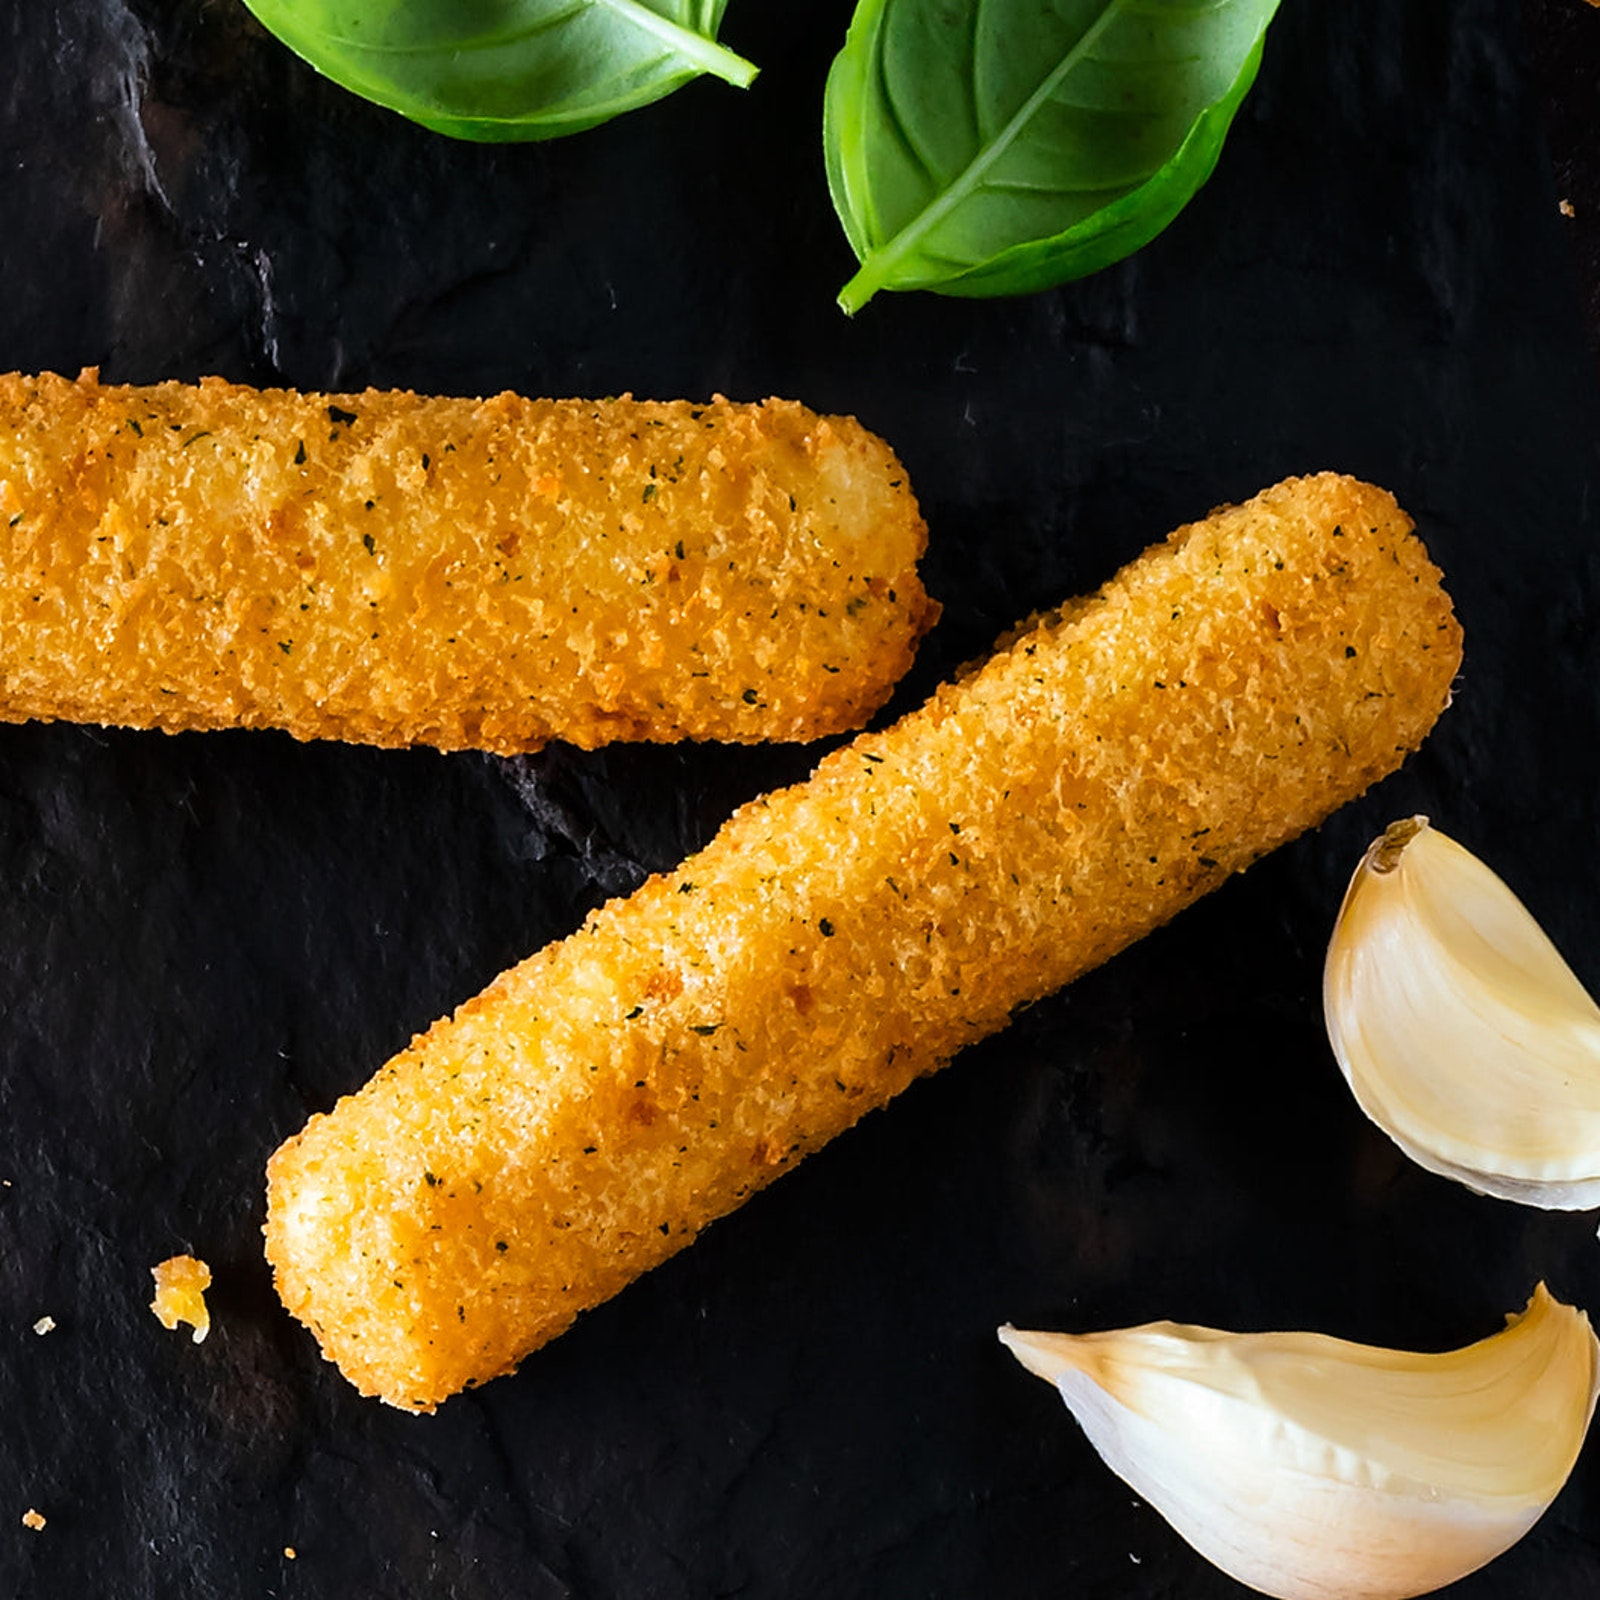 McCain Breaded Mozzarella sticks